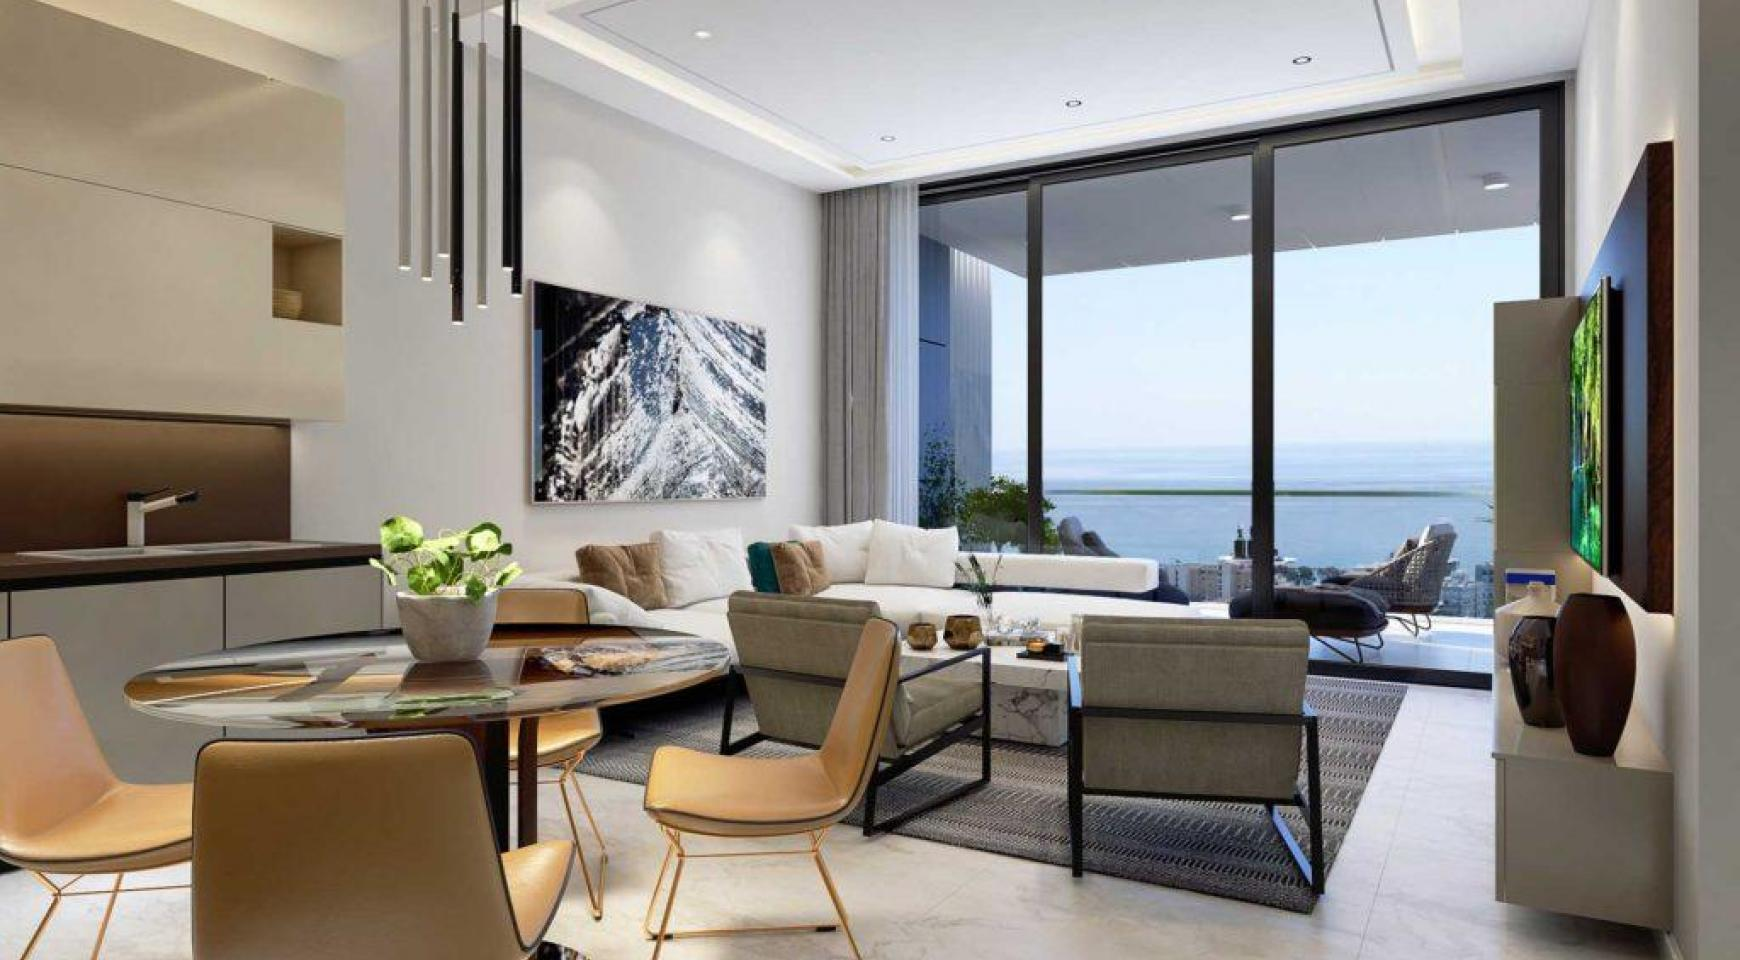 Contemporary 2 Bedroom Apartment with Sea Views in a Luxury Complex - 2